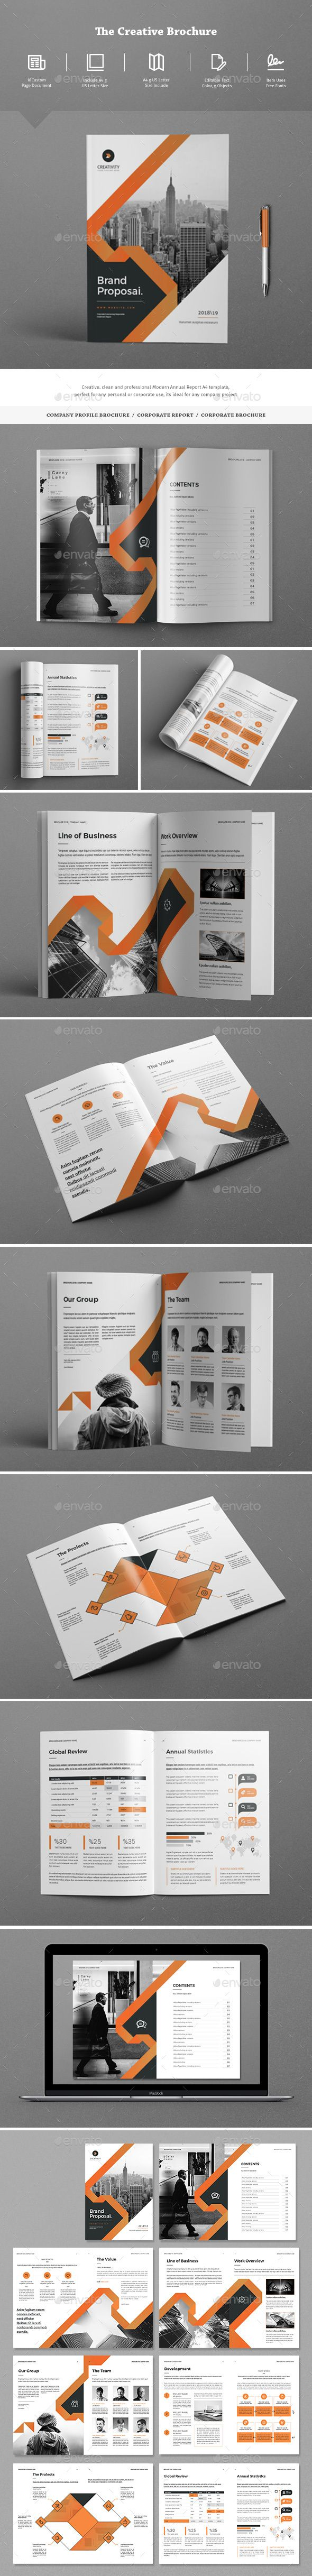 The Brochure Template InDesign INDD - 16 Pages